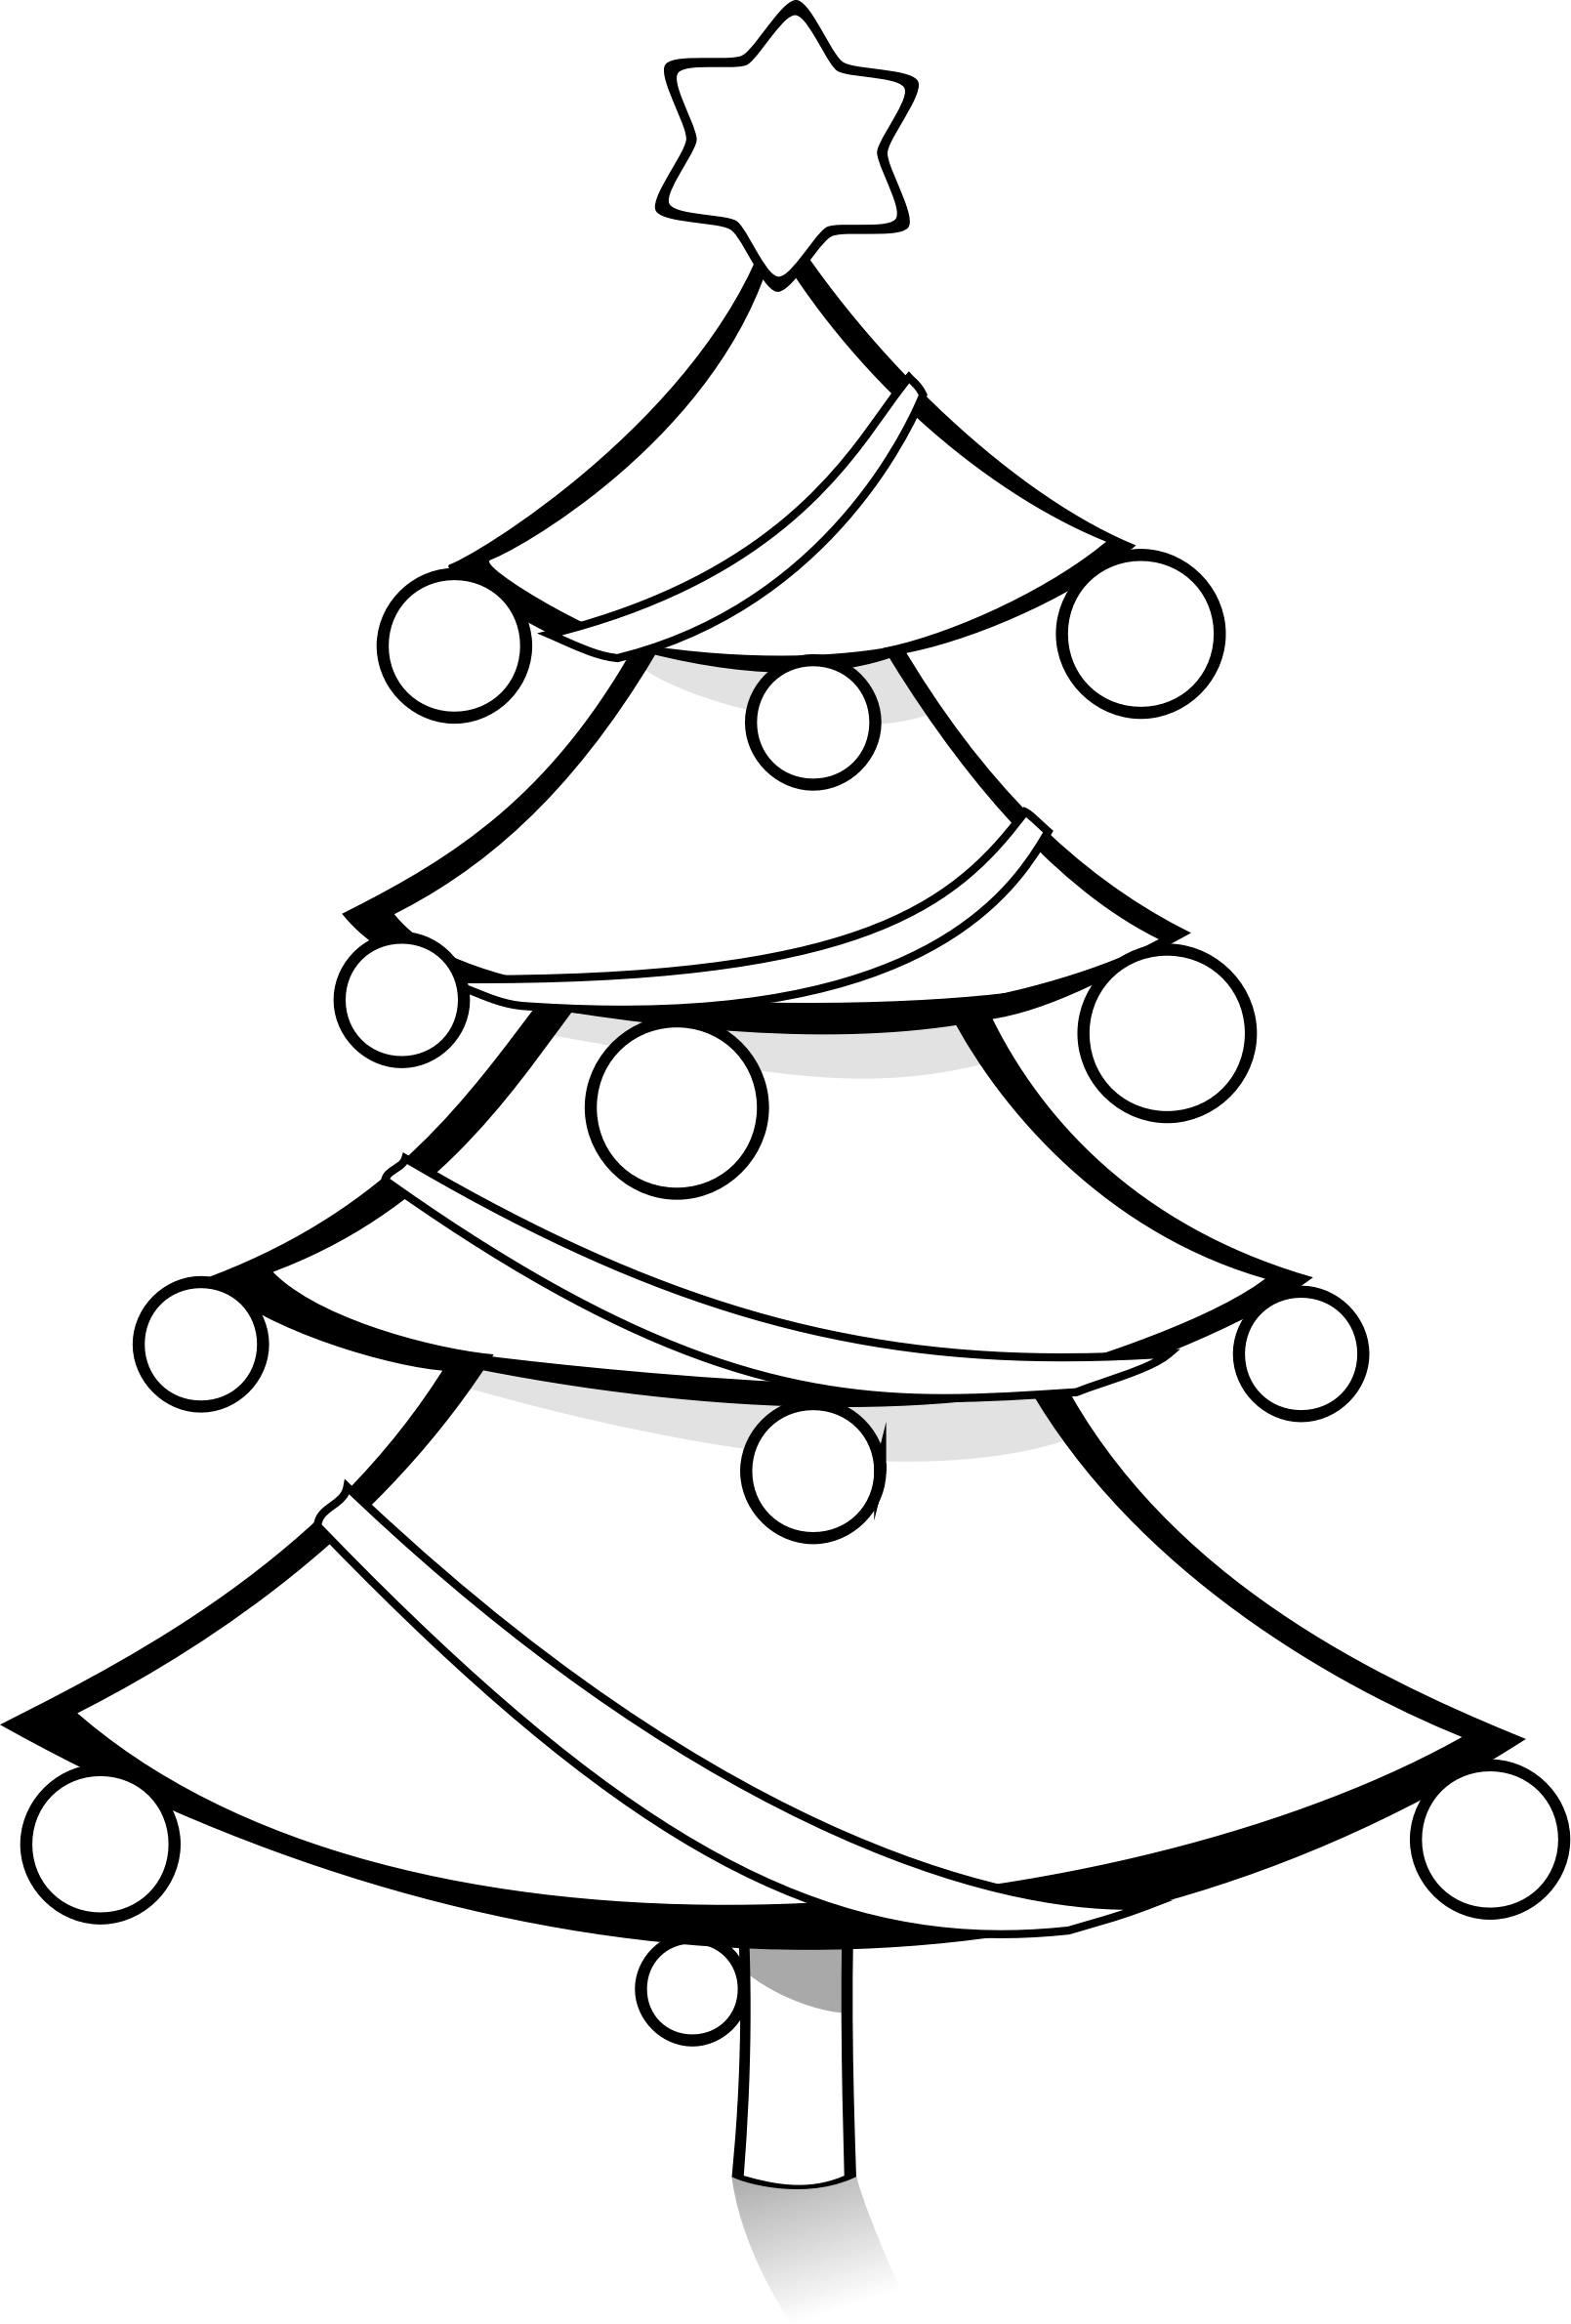 tree clipart coloring apple tree clipart black and white free download on tree clipart coloring